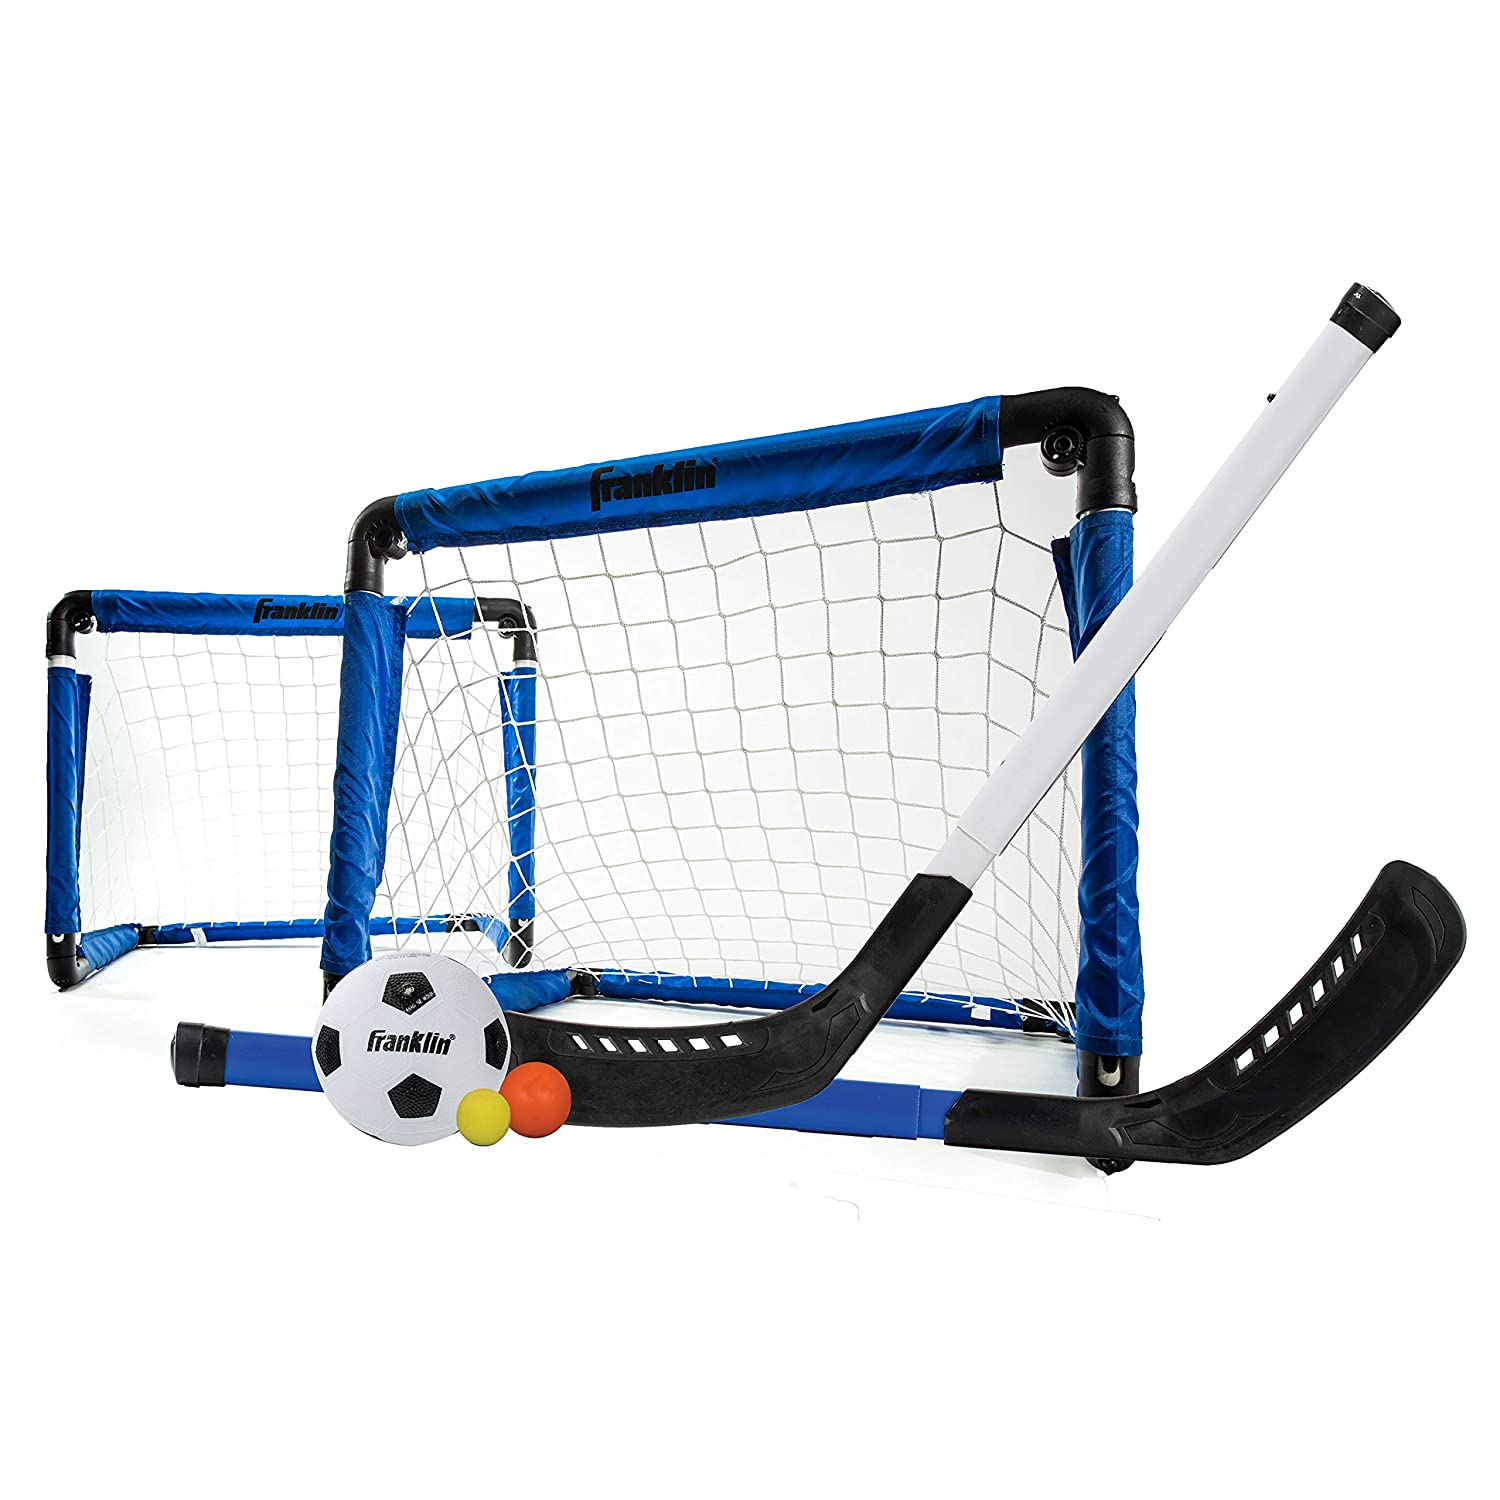 Franklin Sports Indoor Goal Set - Includes 2 Adjustable Hockey Sticks, 2 Foam Hockey Balls, 1 Street Hockey Ball, and 1 Mini Soccer Ball